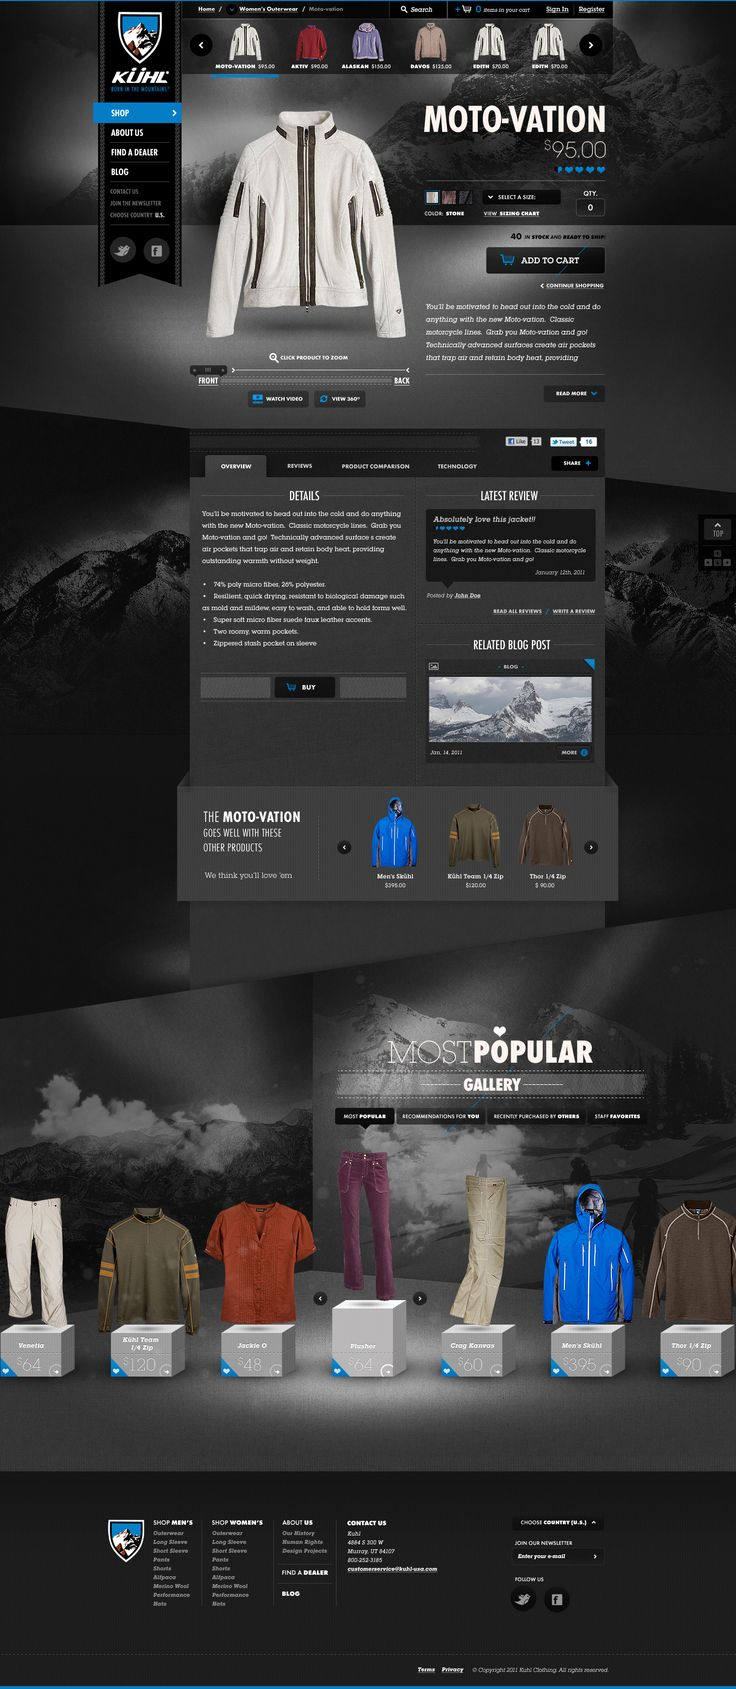 Web Design.Webdesign Inspirations, Kühlcom Ecommerce, Design Ideas, Amazing Web, Website Layout, Webdesign Website, Web Design Inspiration, Website Design, Webdesign Design